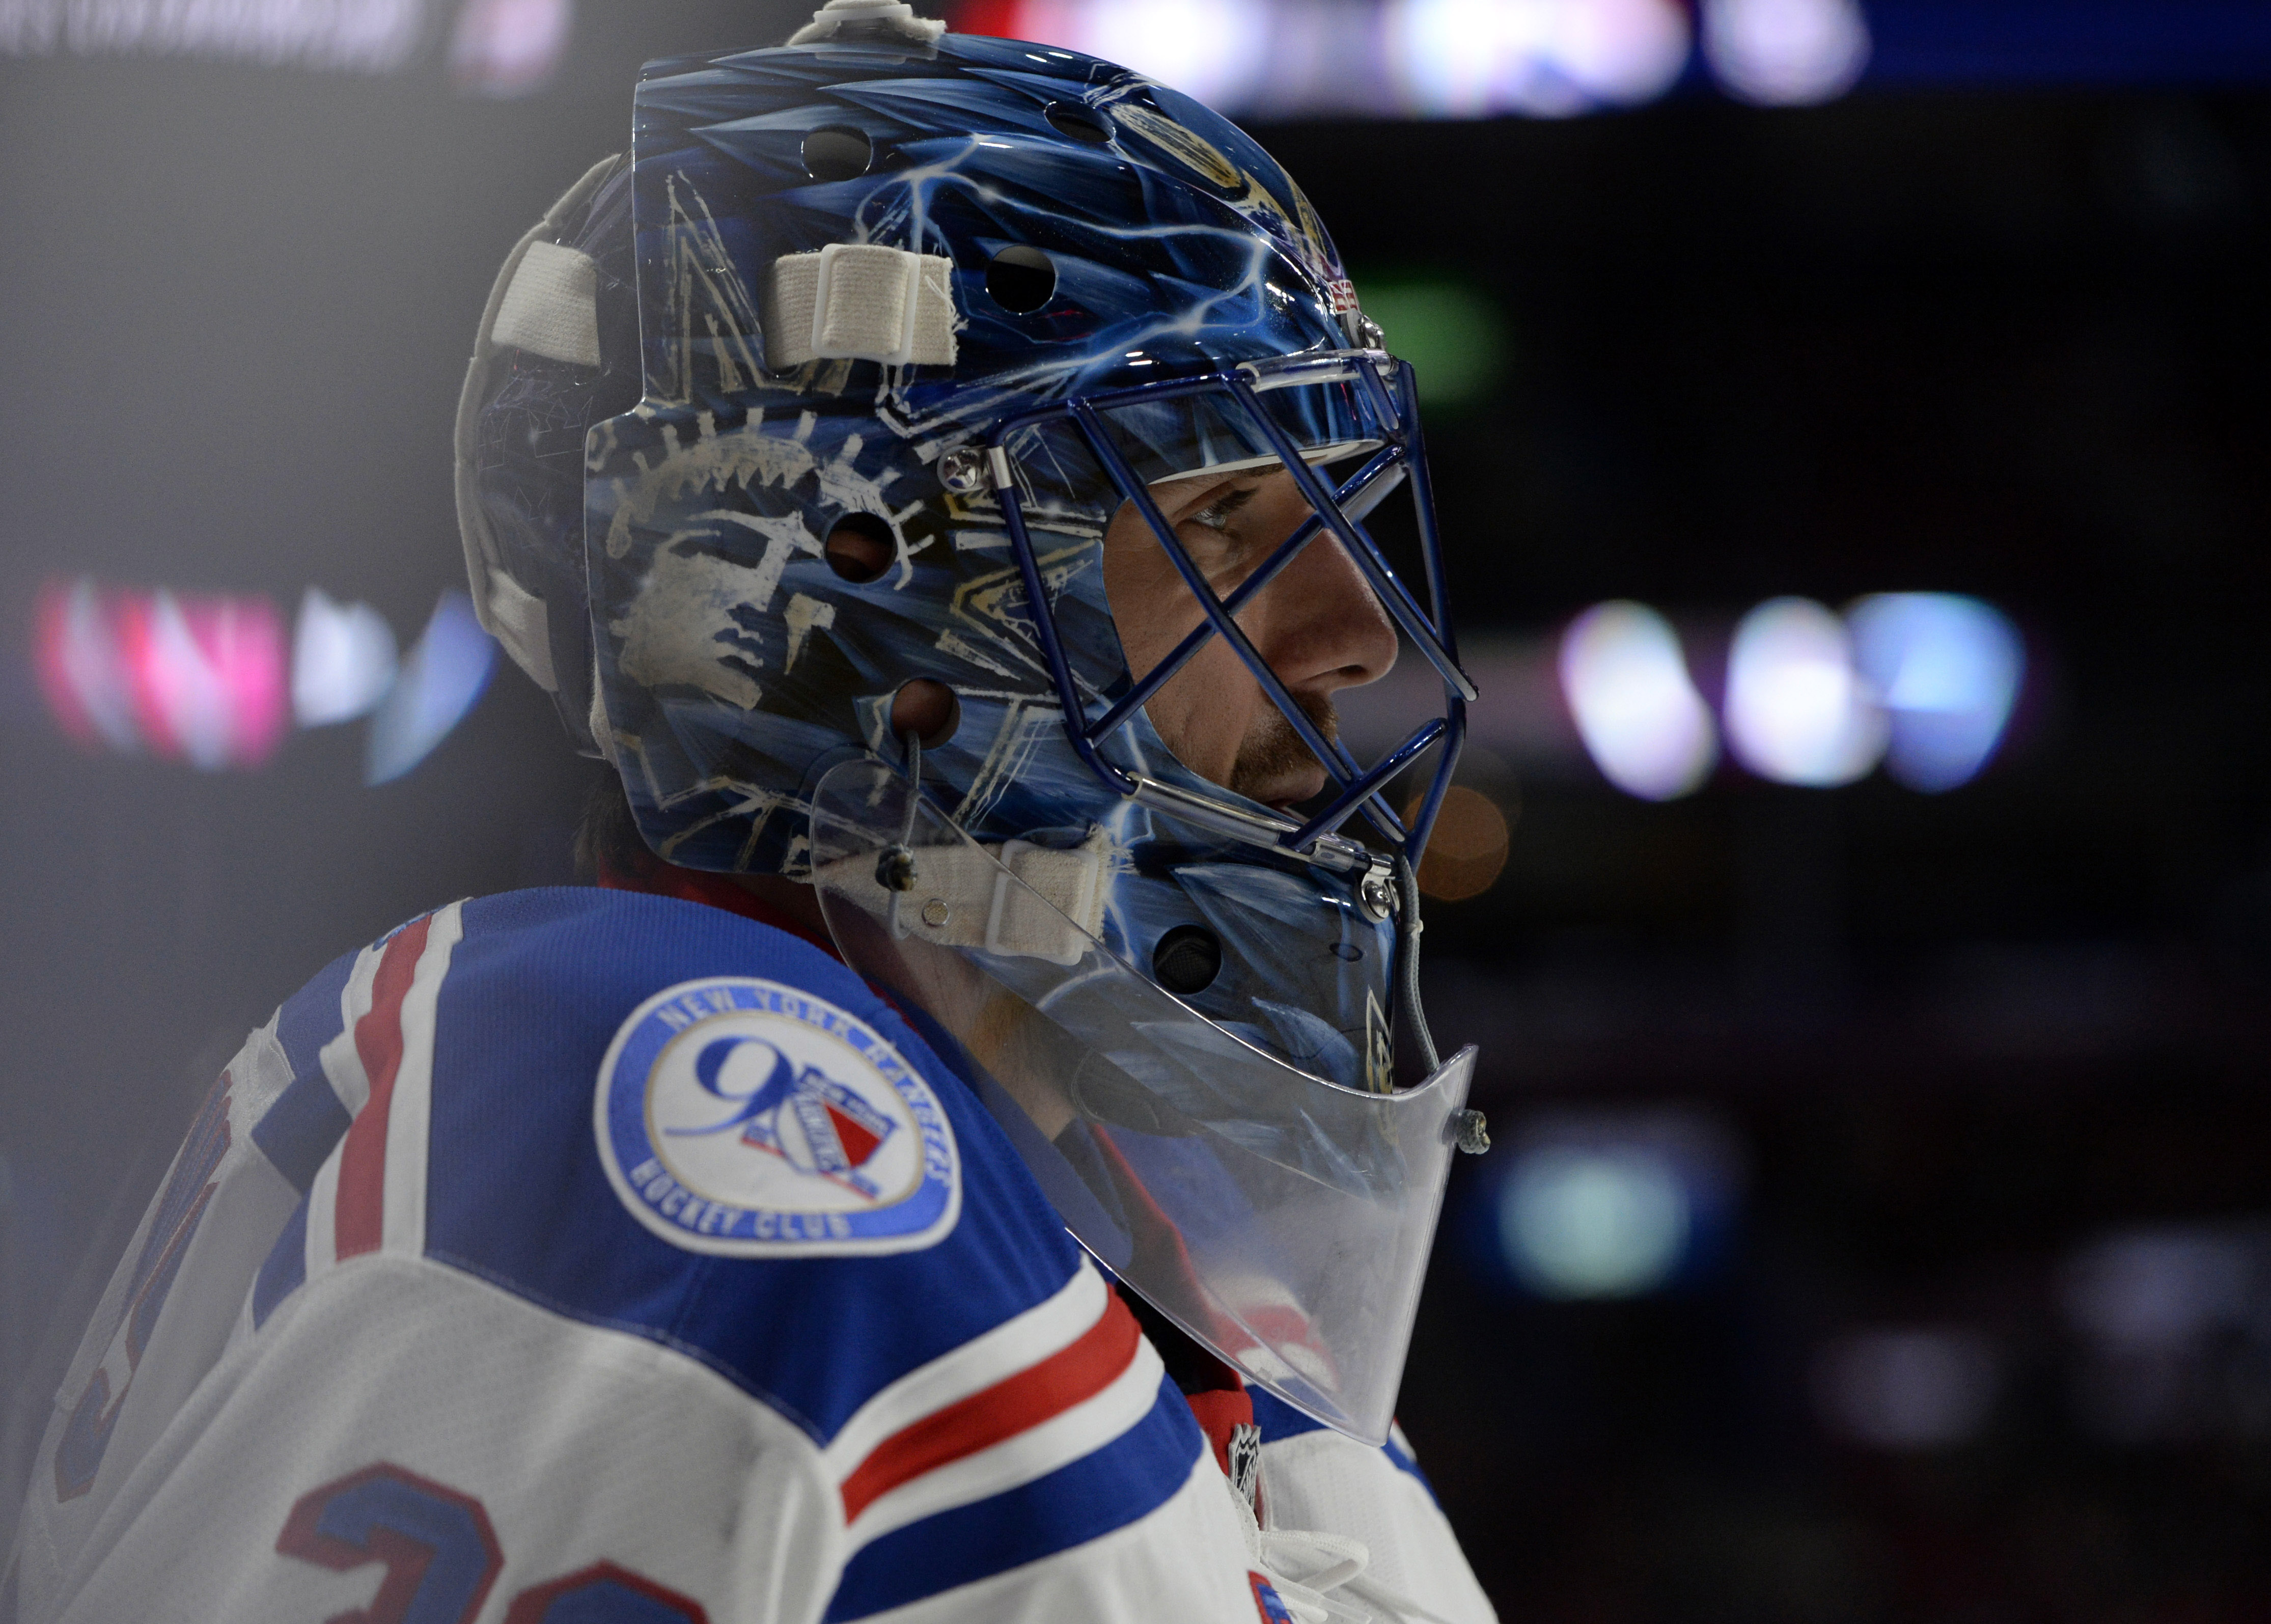 For Henrik Lundqvist and the New York Rangers, the excuses have vanished